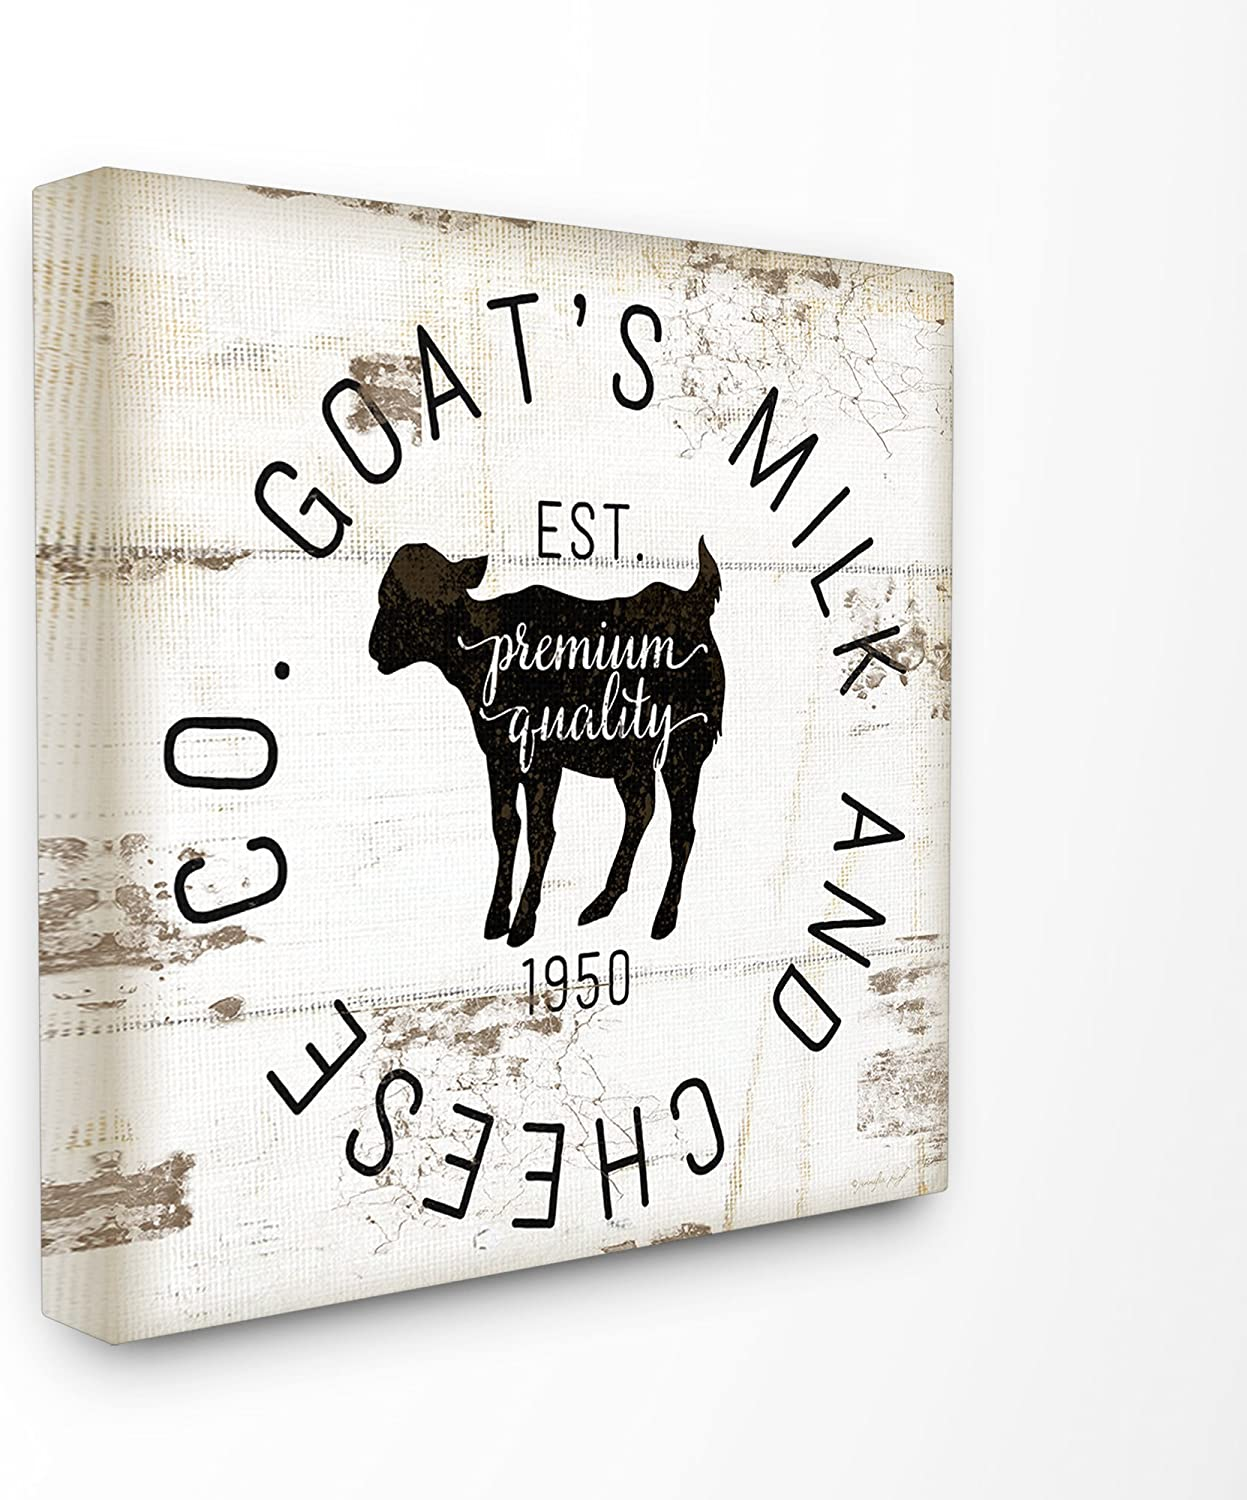 Stupell Industries Home Décor Collection Goat Milk and Cheese Co Vintage Sign Stretched Canvas Wall Art(kwp-1068_cn_17x17)